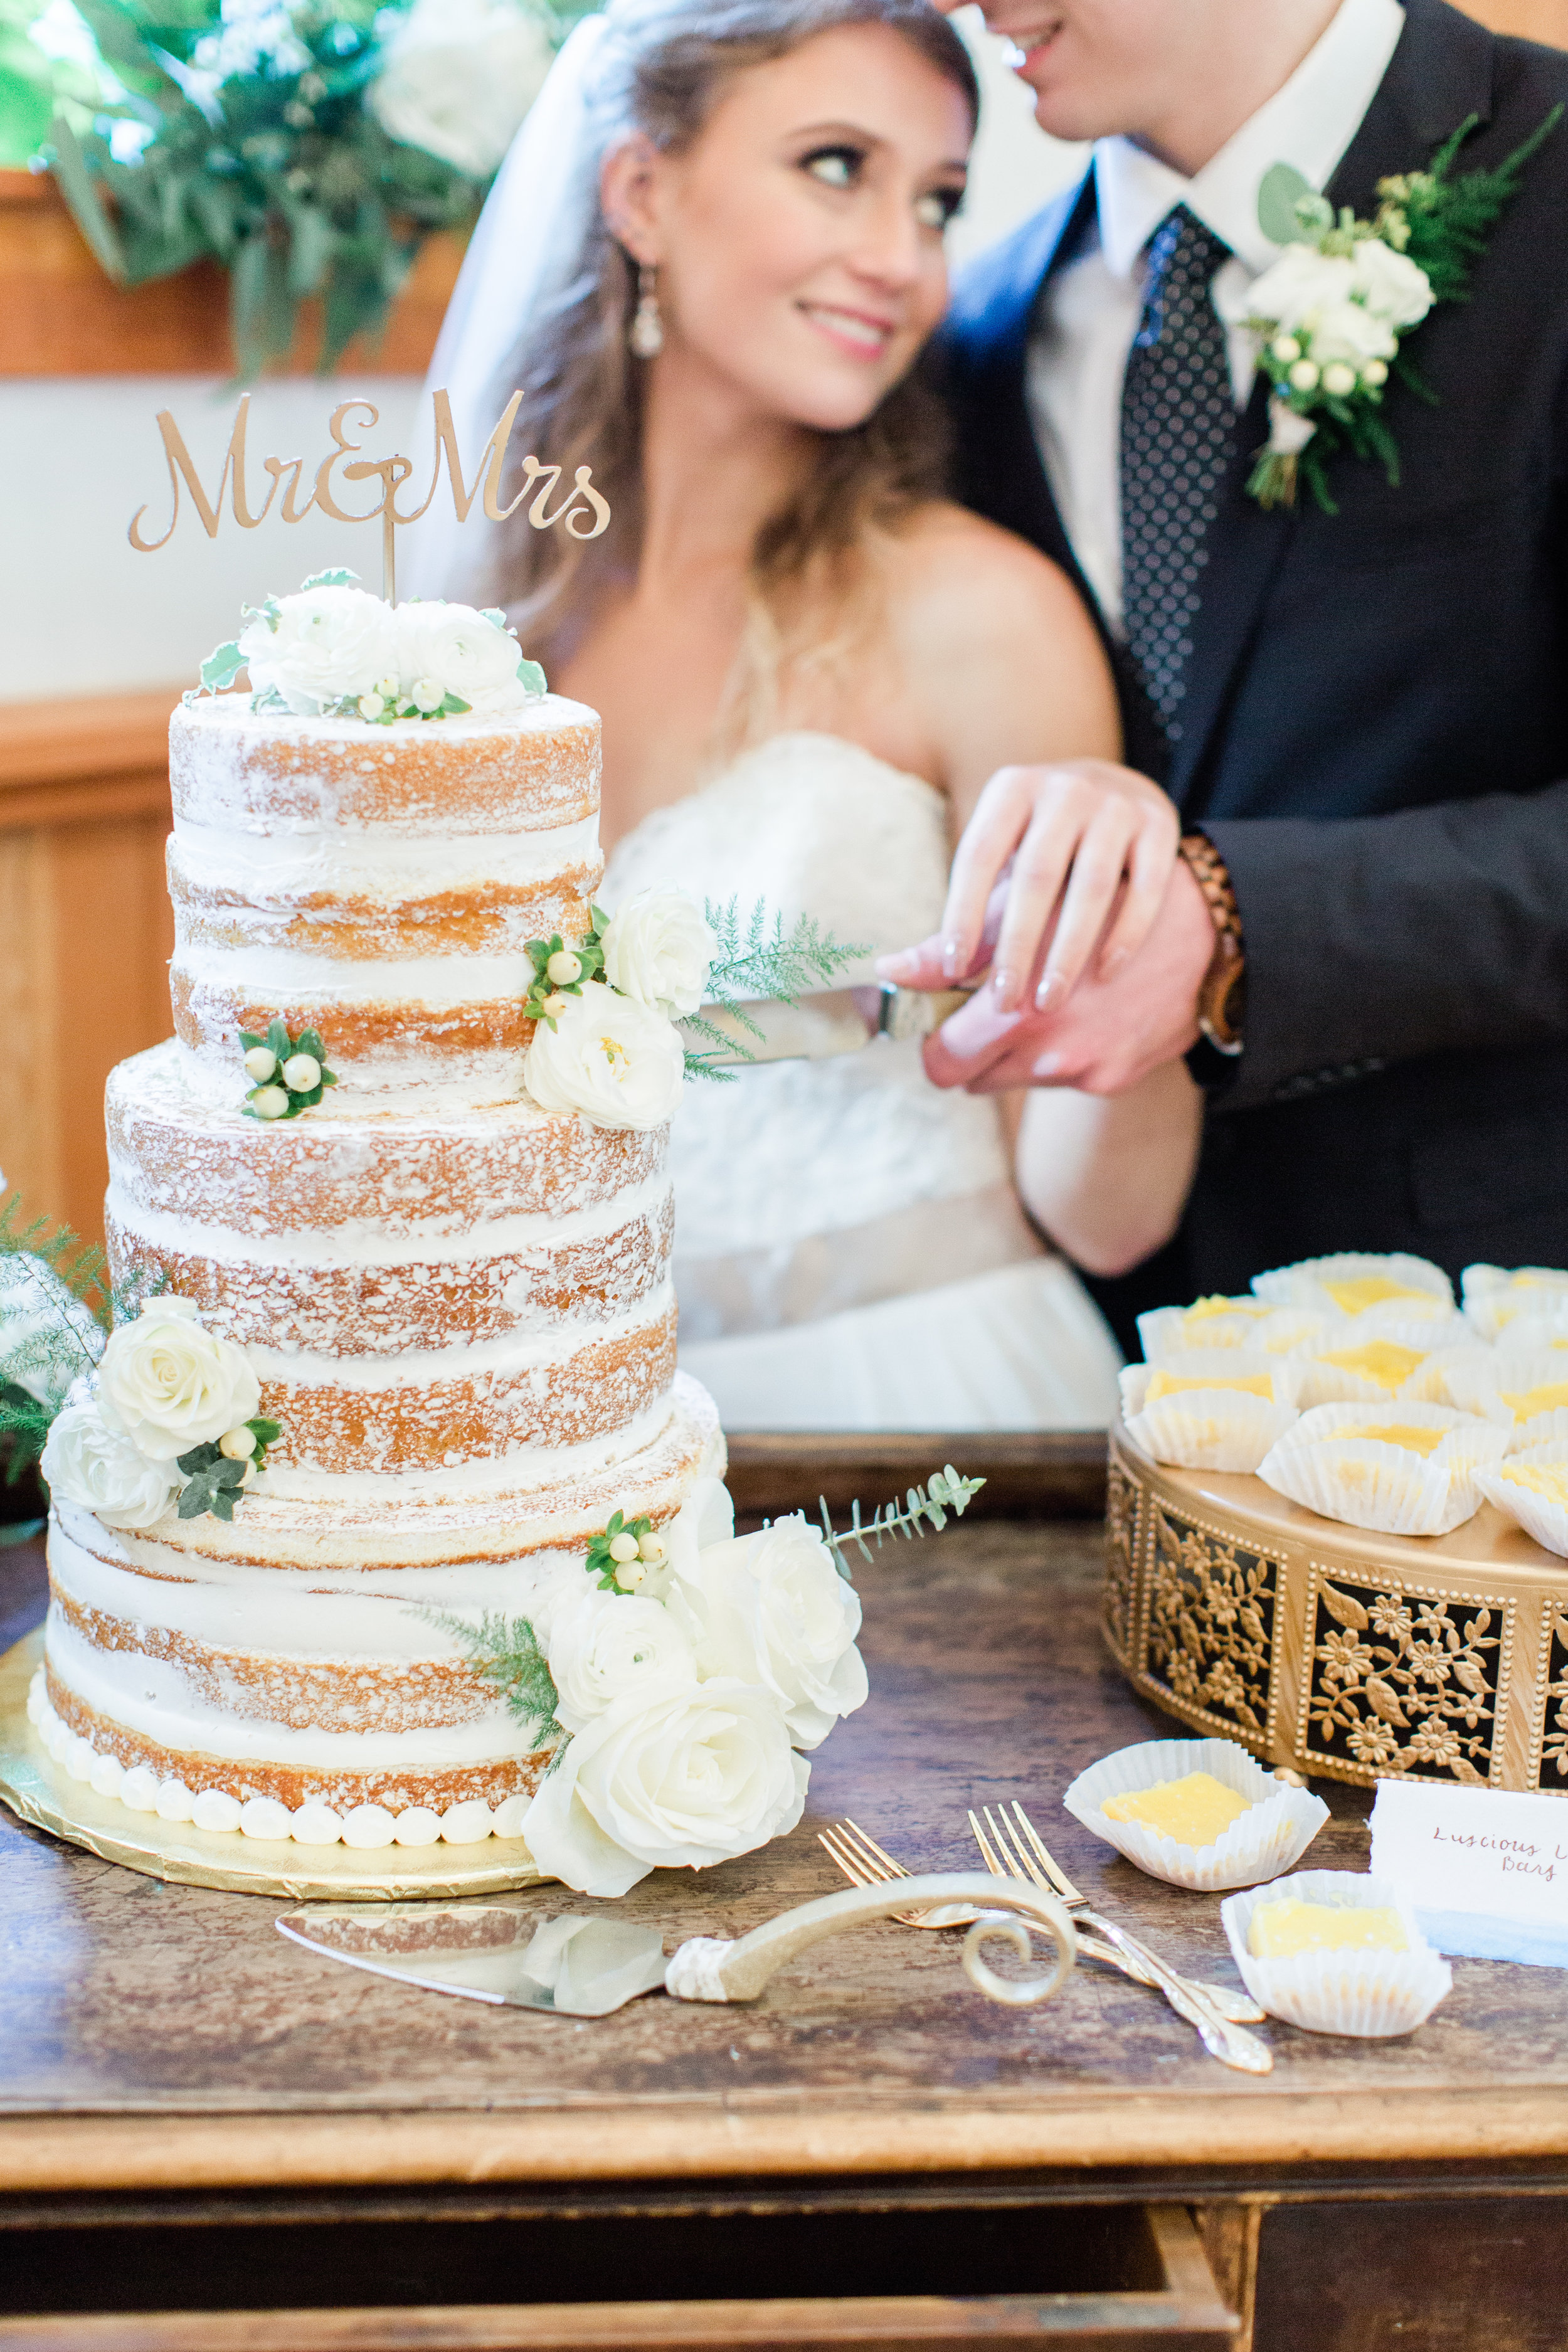 Cake & Desserts | Soft Peaks Cakery  Photography | Belen Isabel Photography  Planning & Styling | To Be Loved Events & Anela Events  Rentals | Danner and Soli  Floral Design | Flowers & Thyme